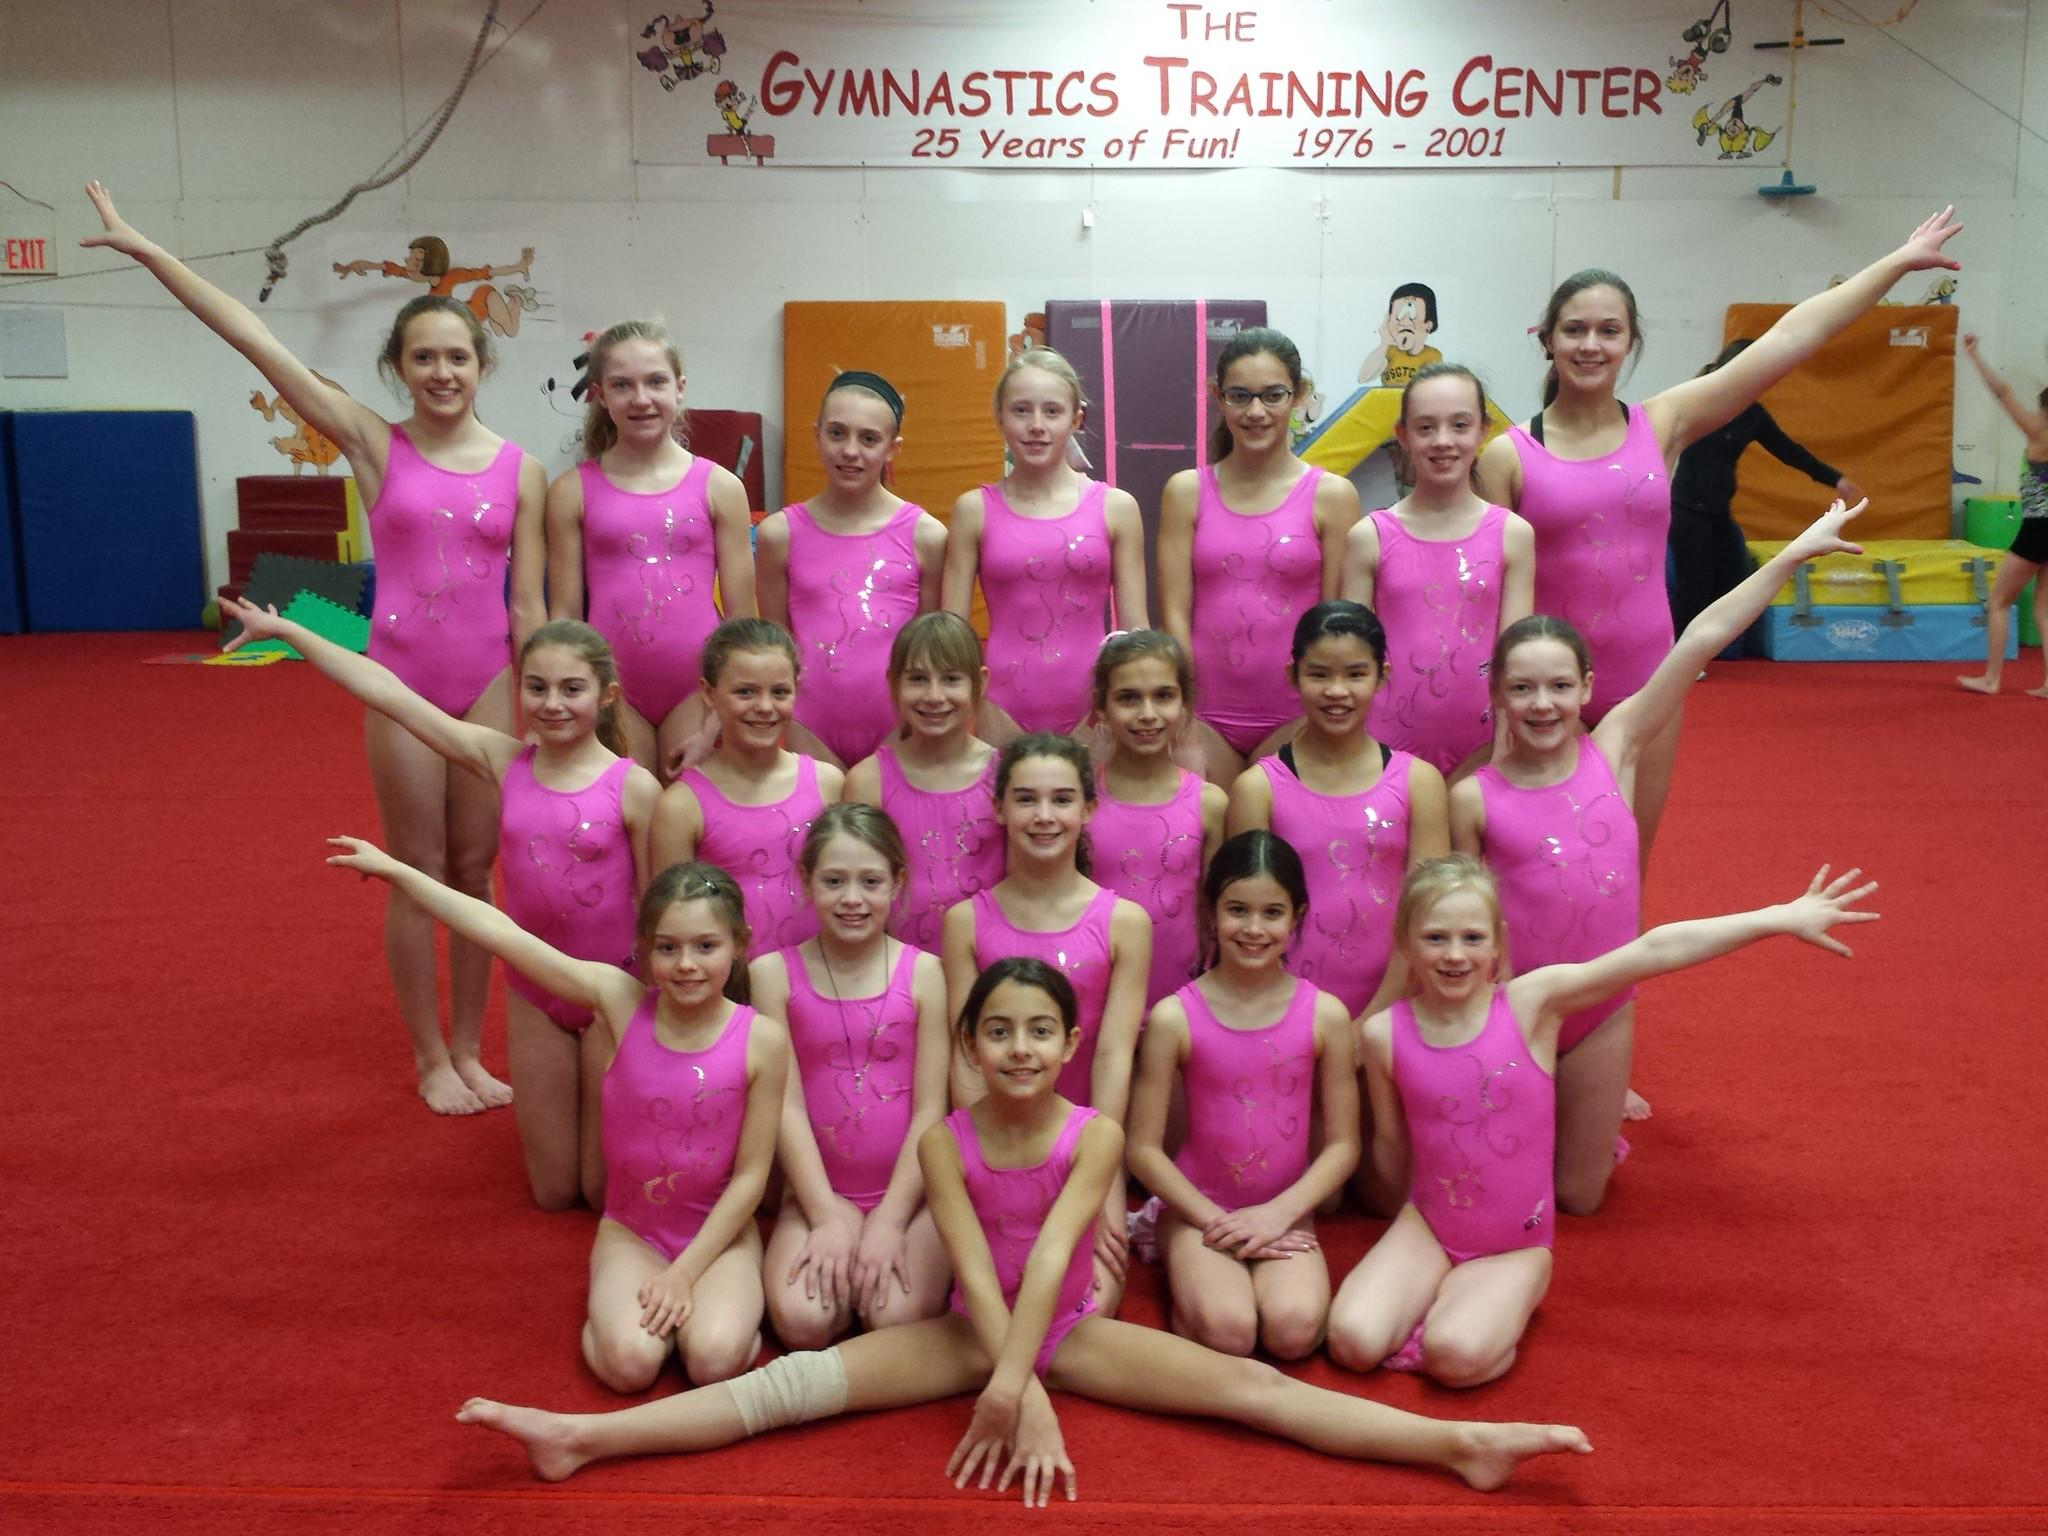 GTC team members participating in the 2014 Pink Invitational meet included: Front: Ava Lashgari, first row, from left to right: Kaelyn Gallaway, Katherine Benoit, Kate Schmucker, Natalie Yarnell and Gwen Ockberbloom, second row, from left to right: Brynn Sherry, Cori Schmidt, Maren Beverly, Sophia Przystawski, Sara Hagstrom and Fiona McNally, back row, from left to right: Chloe Dugan, Skylar McNally, Katheryn Rutledge, Isabella Harrington, Megan Fecteau, Taylor Bowie and Brenna Pellon.Not pictured: Kaylie Goodwin, Ashley Goodwin, Ally Doyle and GTC coaches Nickie Garon, Meghan Goodwin and Alex Ockerbloom.